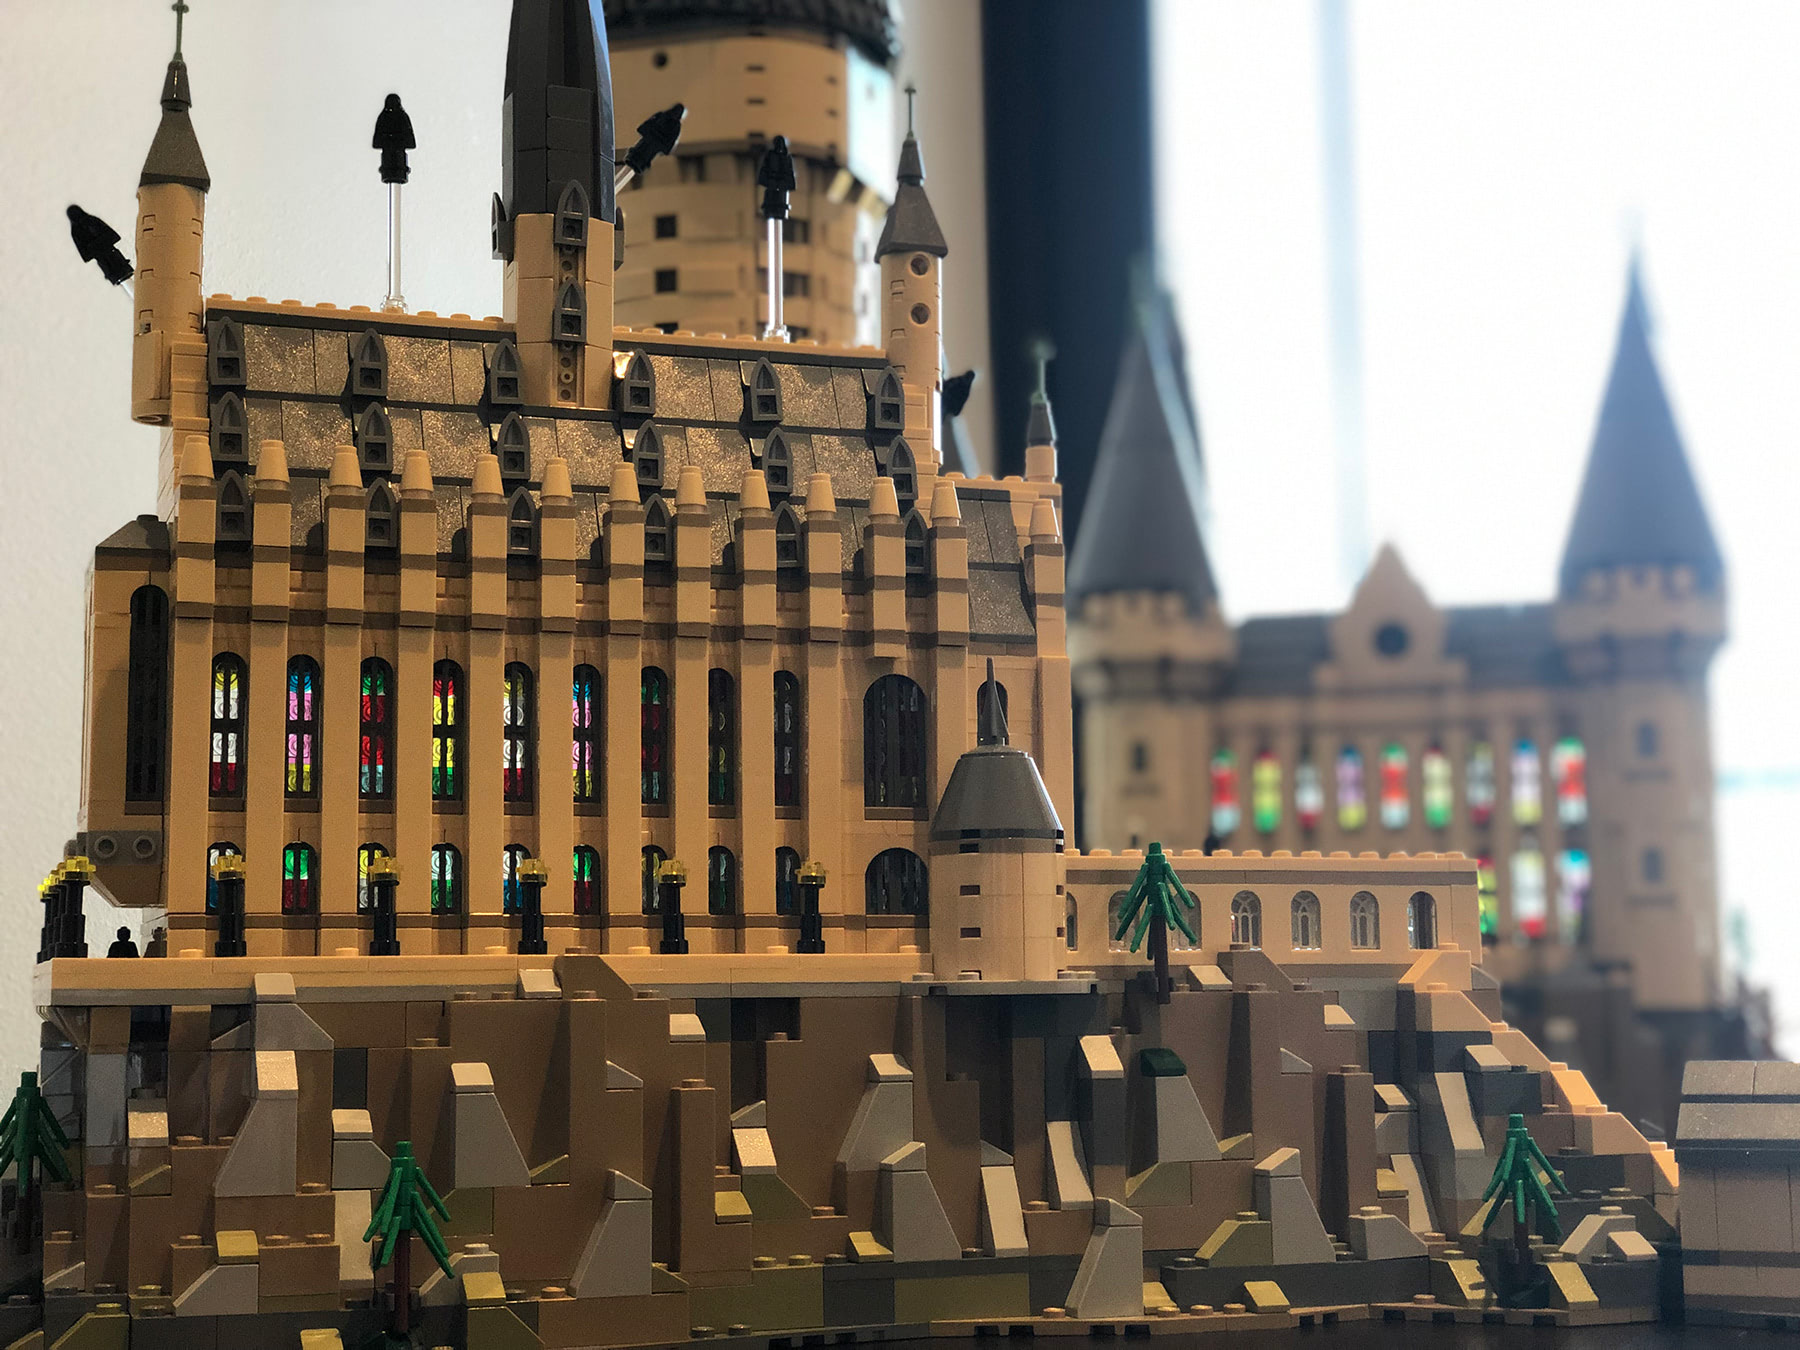 LEGO Hogwarts Castle (71043) stained glass windows